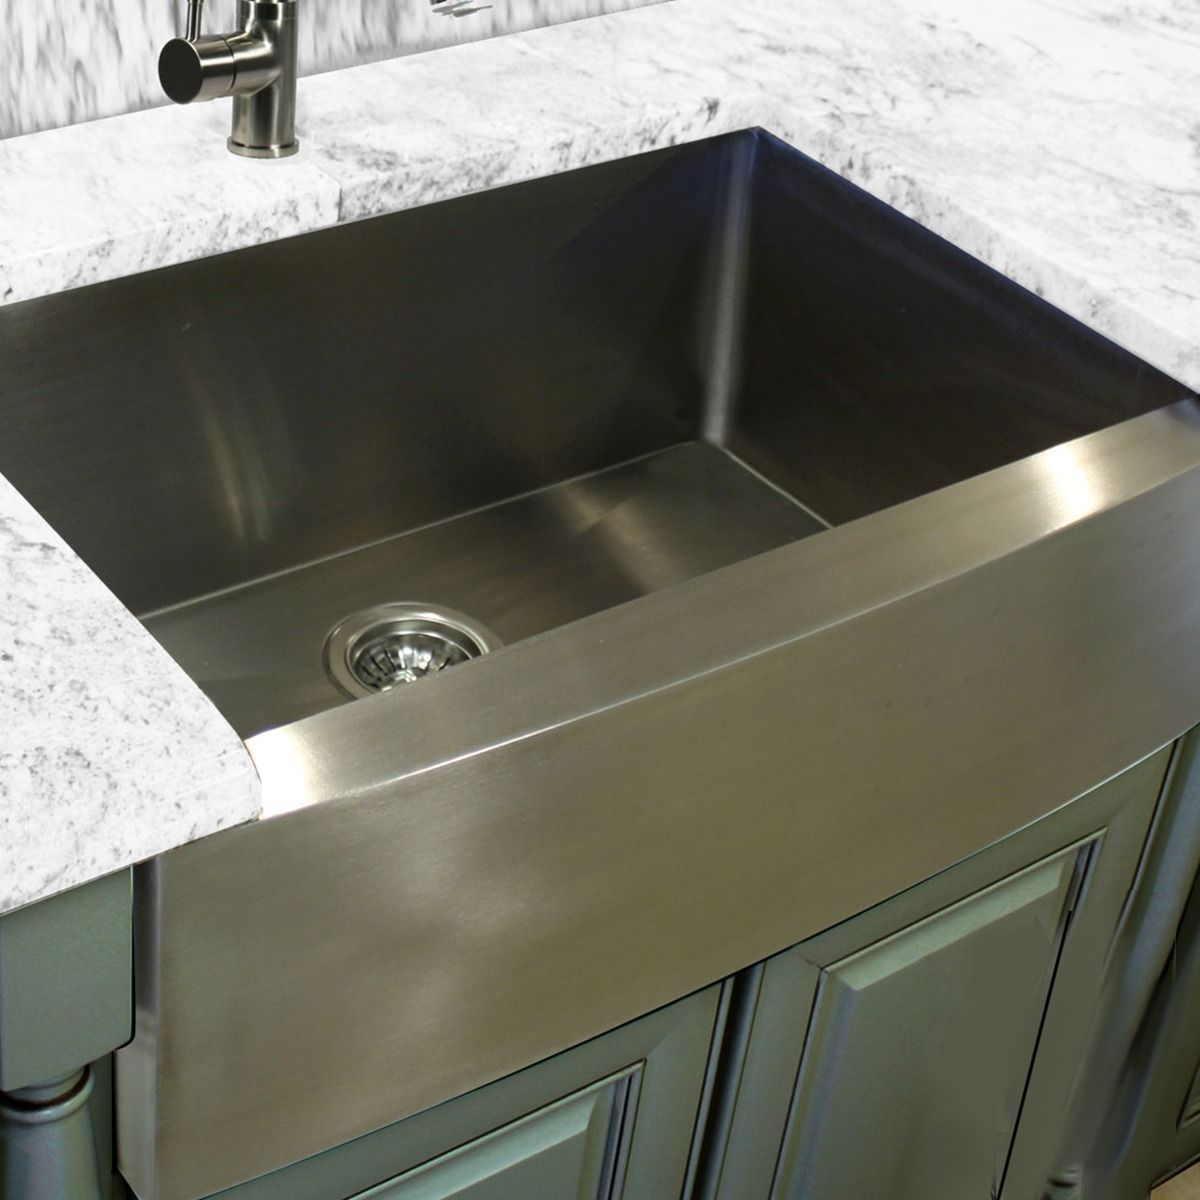 highpoint collection stainless steel  silver  30 inch farmhouse apron sink  304 stainless stainless steel 30 inch farmhouse apron sink   farmhouse aprons      rh   pinterest com